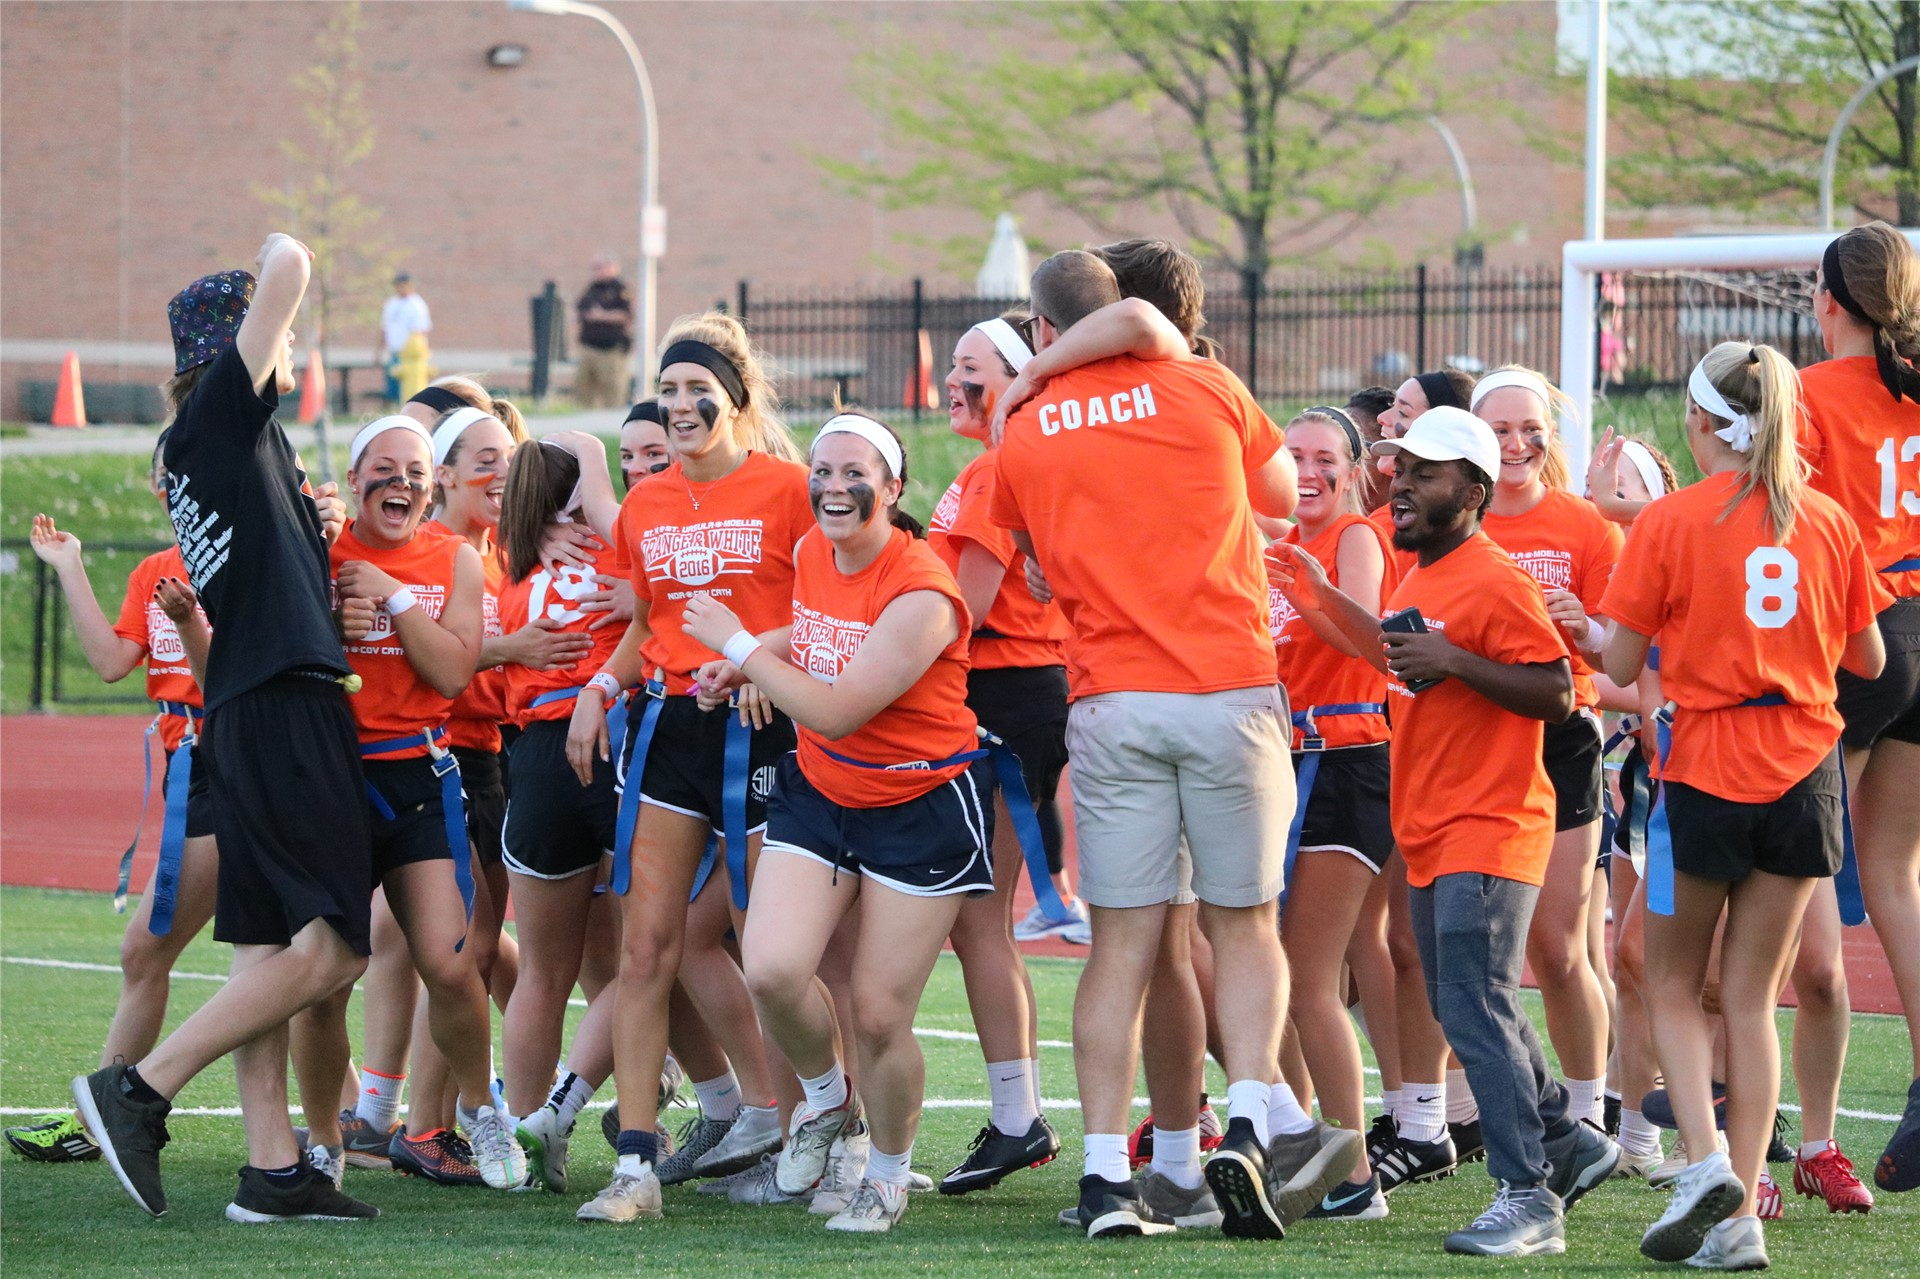 SUA topped NDA in the Orange and White Game to benefit Children's Hospital Leukemia and Lymphoma res